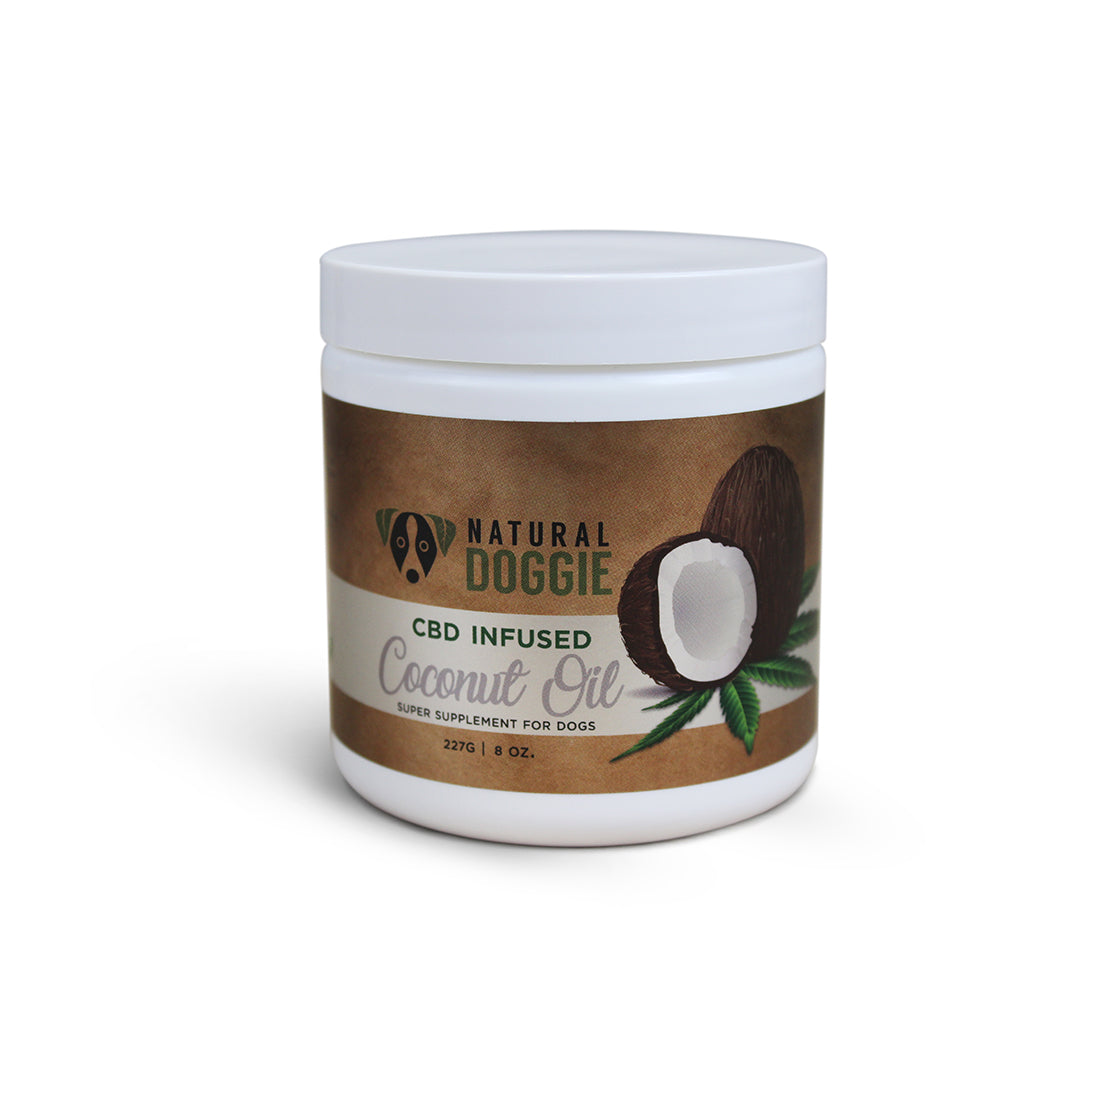 Natural Doggie Hemp-Infused Virgin Coconut Oil